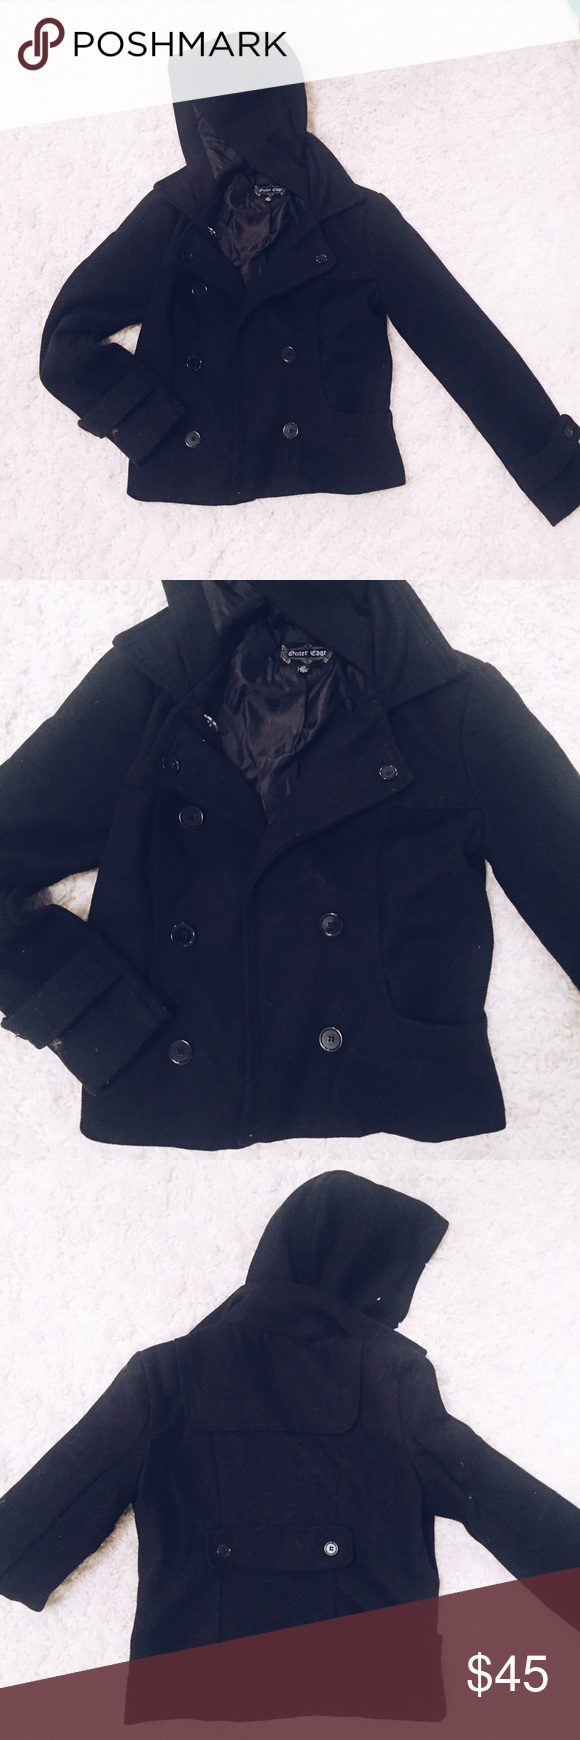 Pea coat   Pacsun and Hoods